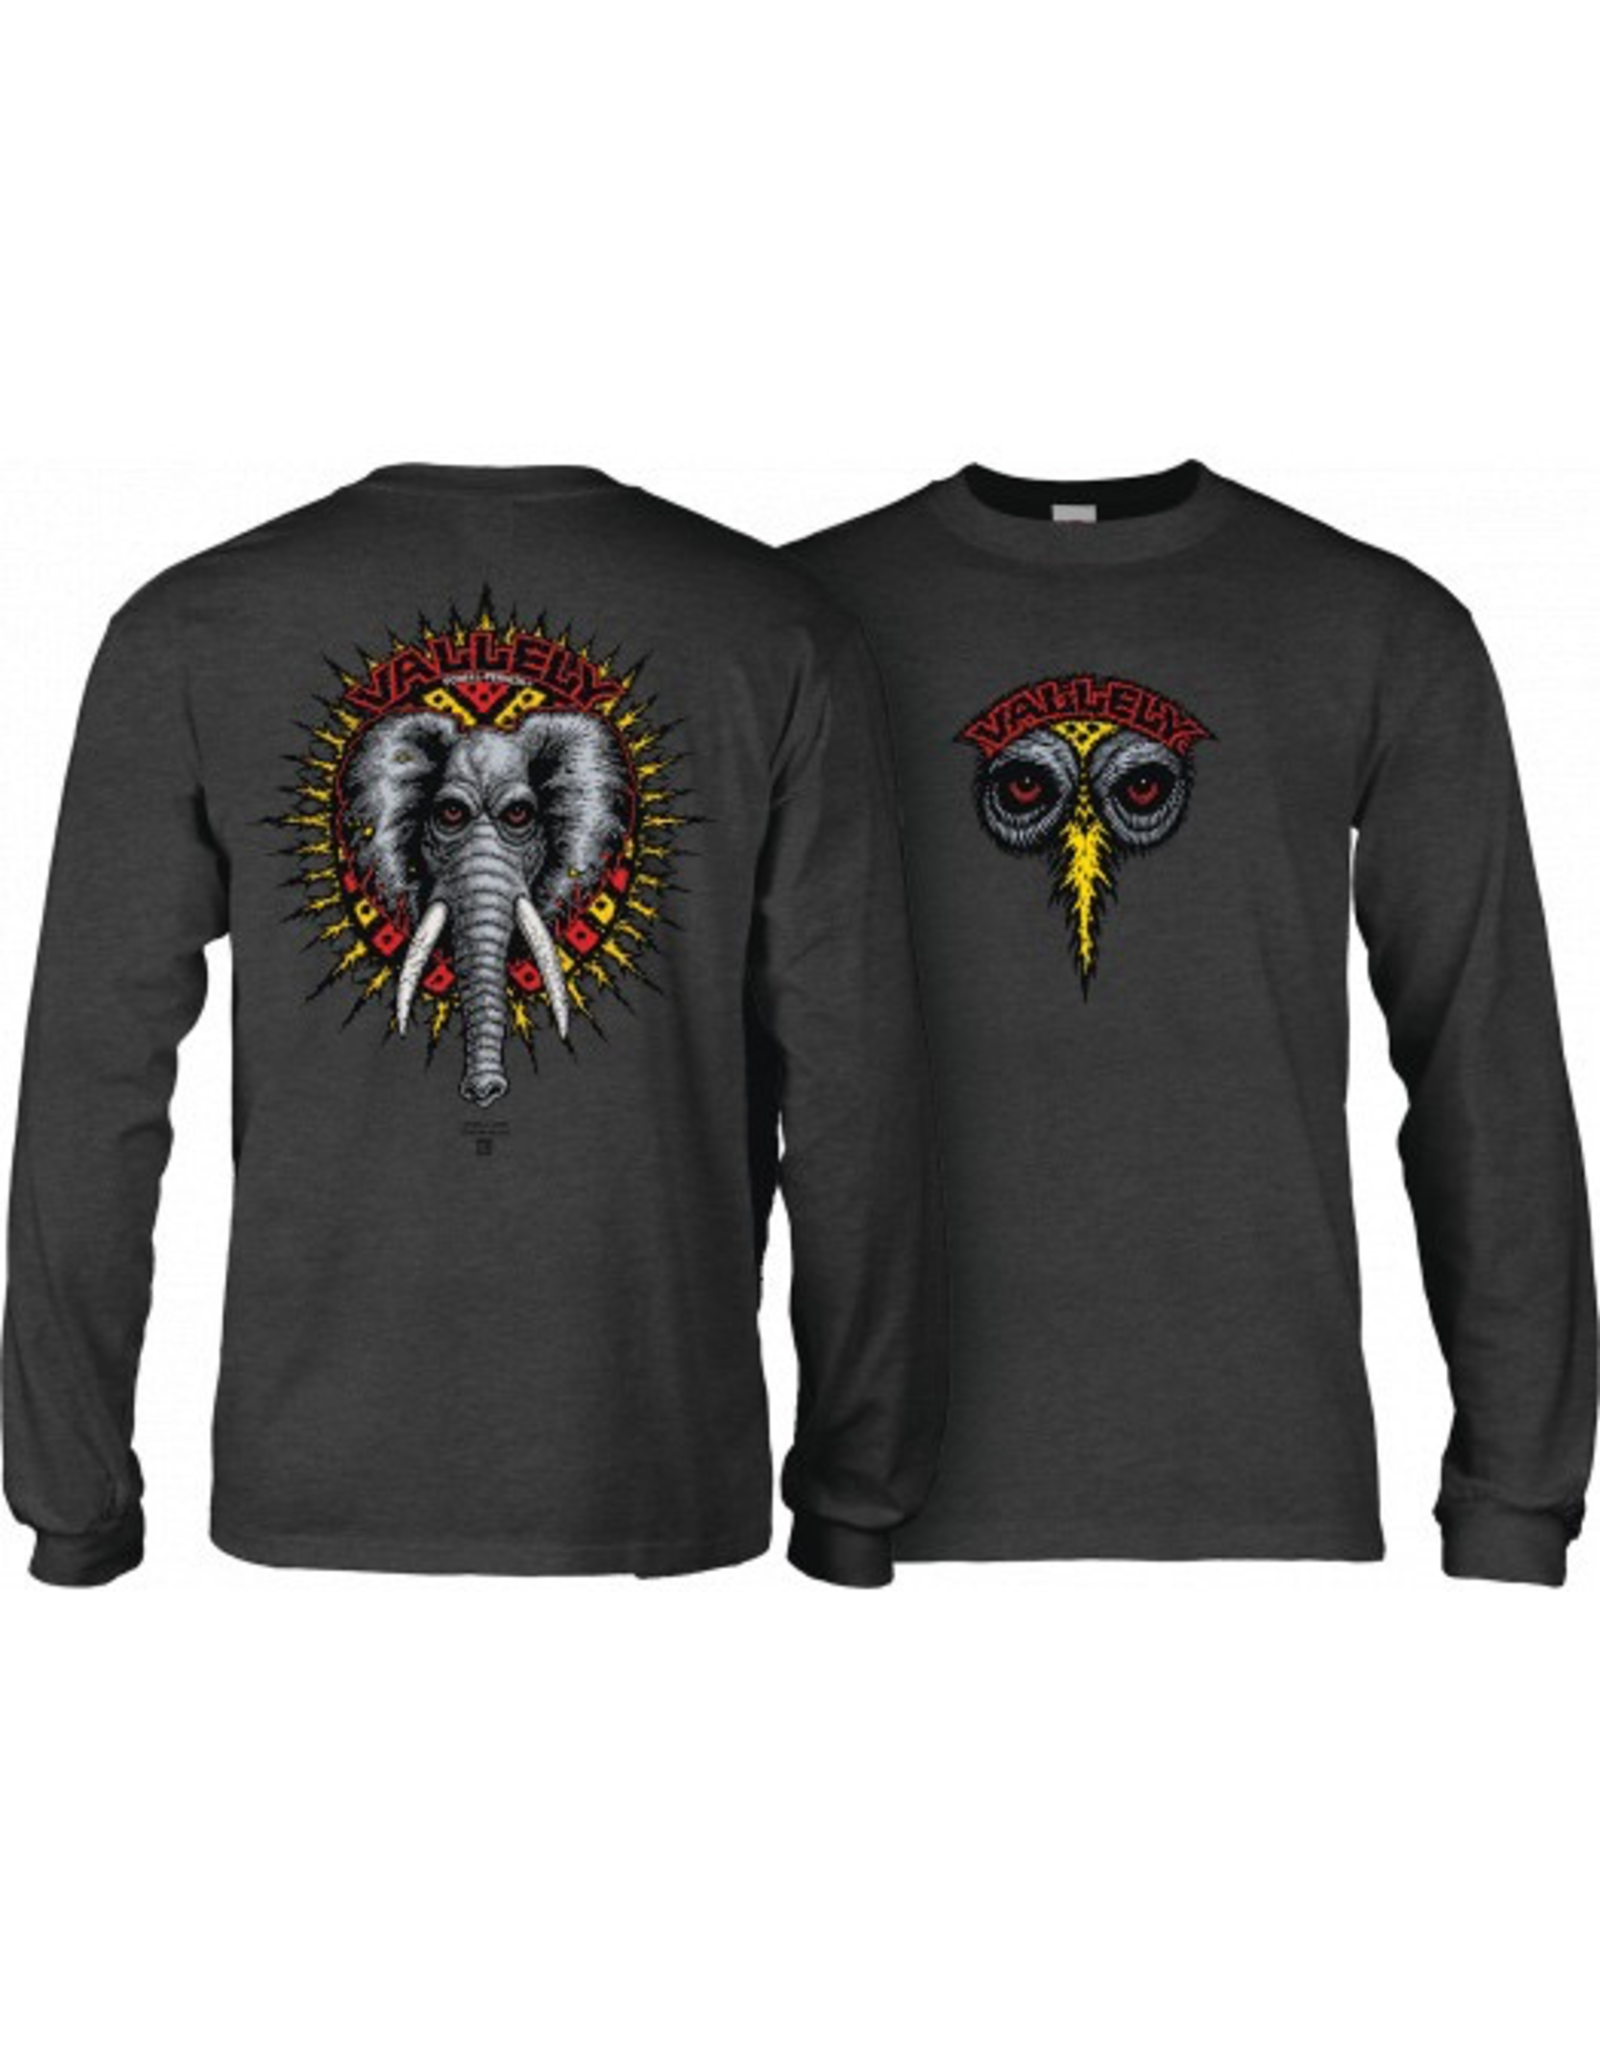 POWELL Powell Peralta Vallely Elephant L/S Shirt Charcoal